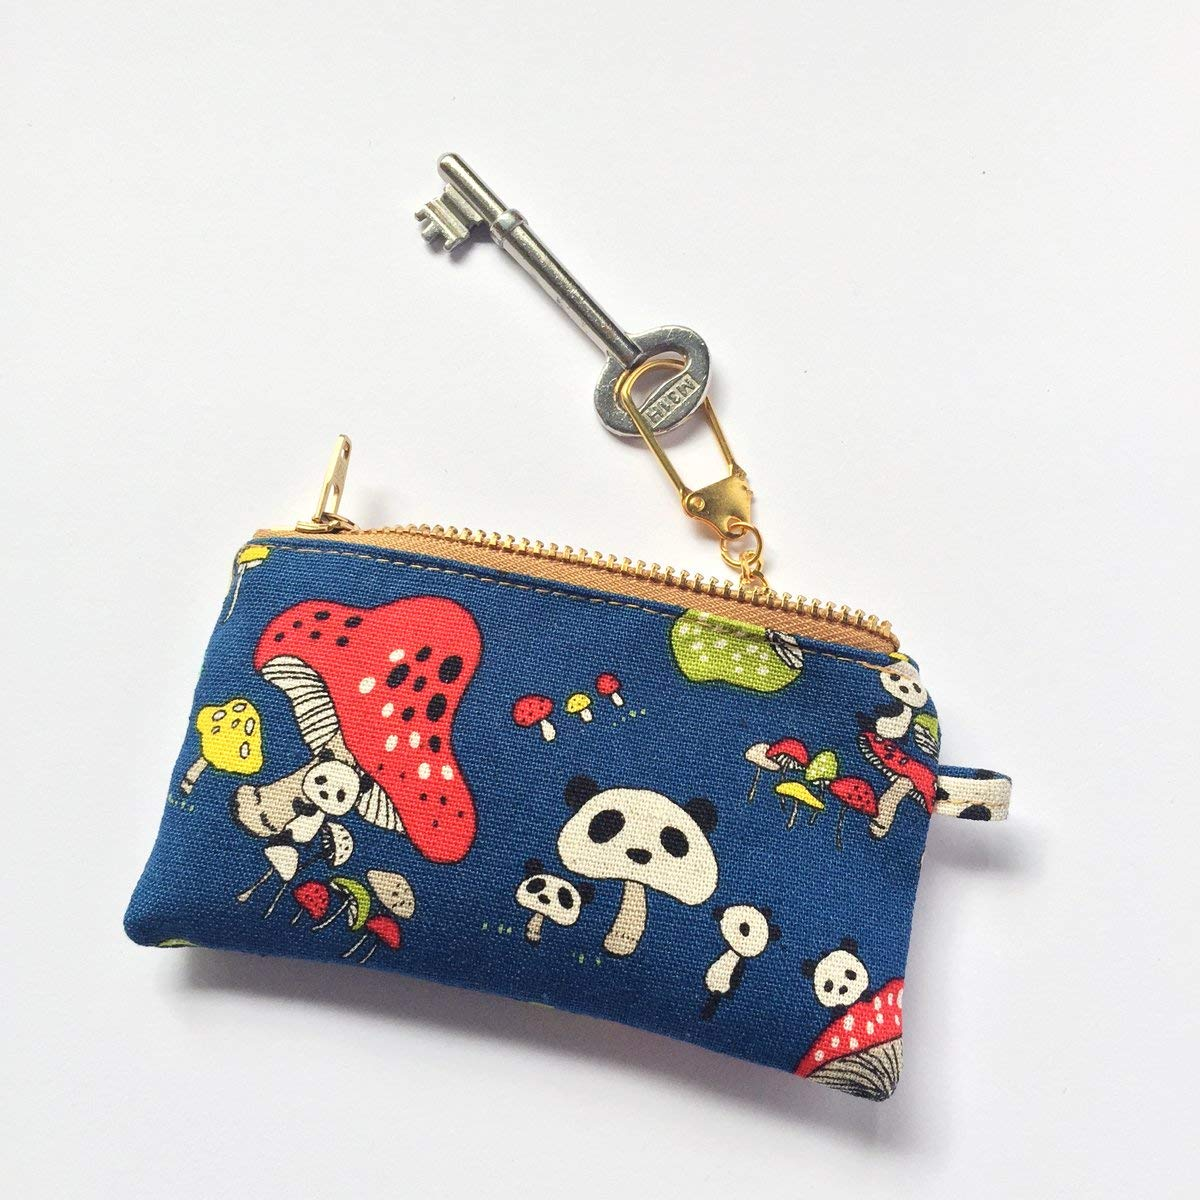 Panda Key Purse • Coin Pouch, Pocket Purse, Mini Zipper Pouch, Cute, Mushroom, Japanese Gifts For Her